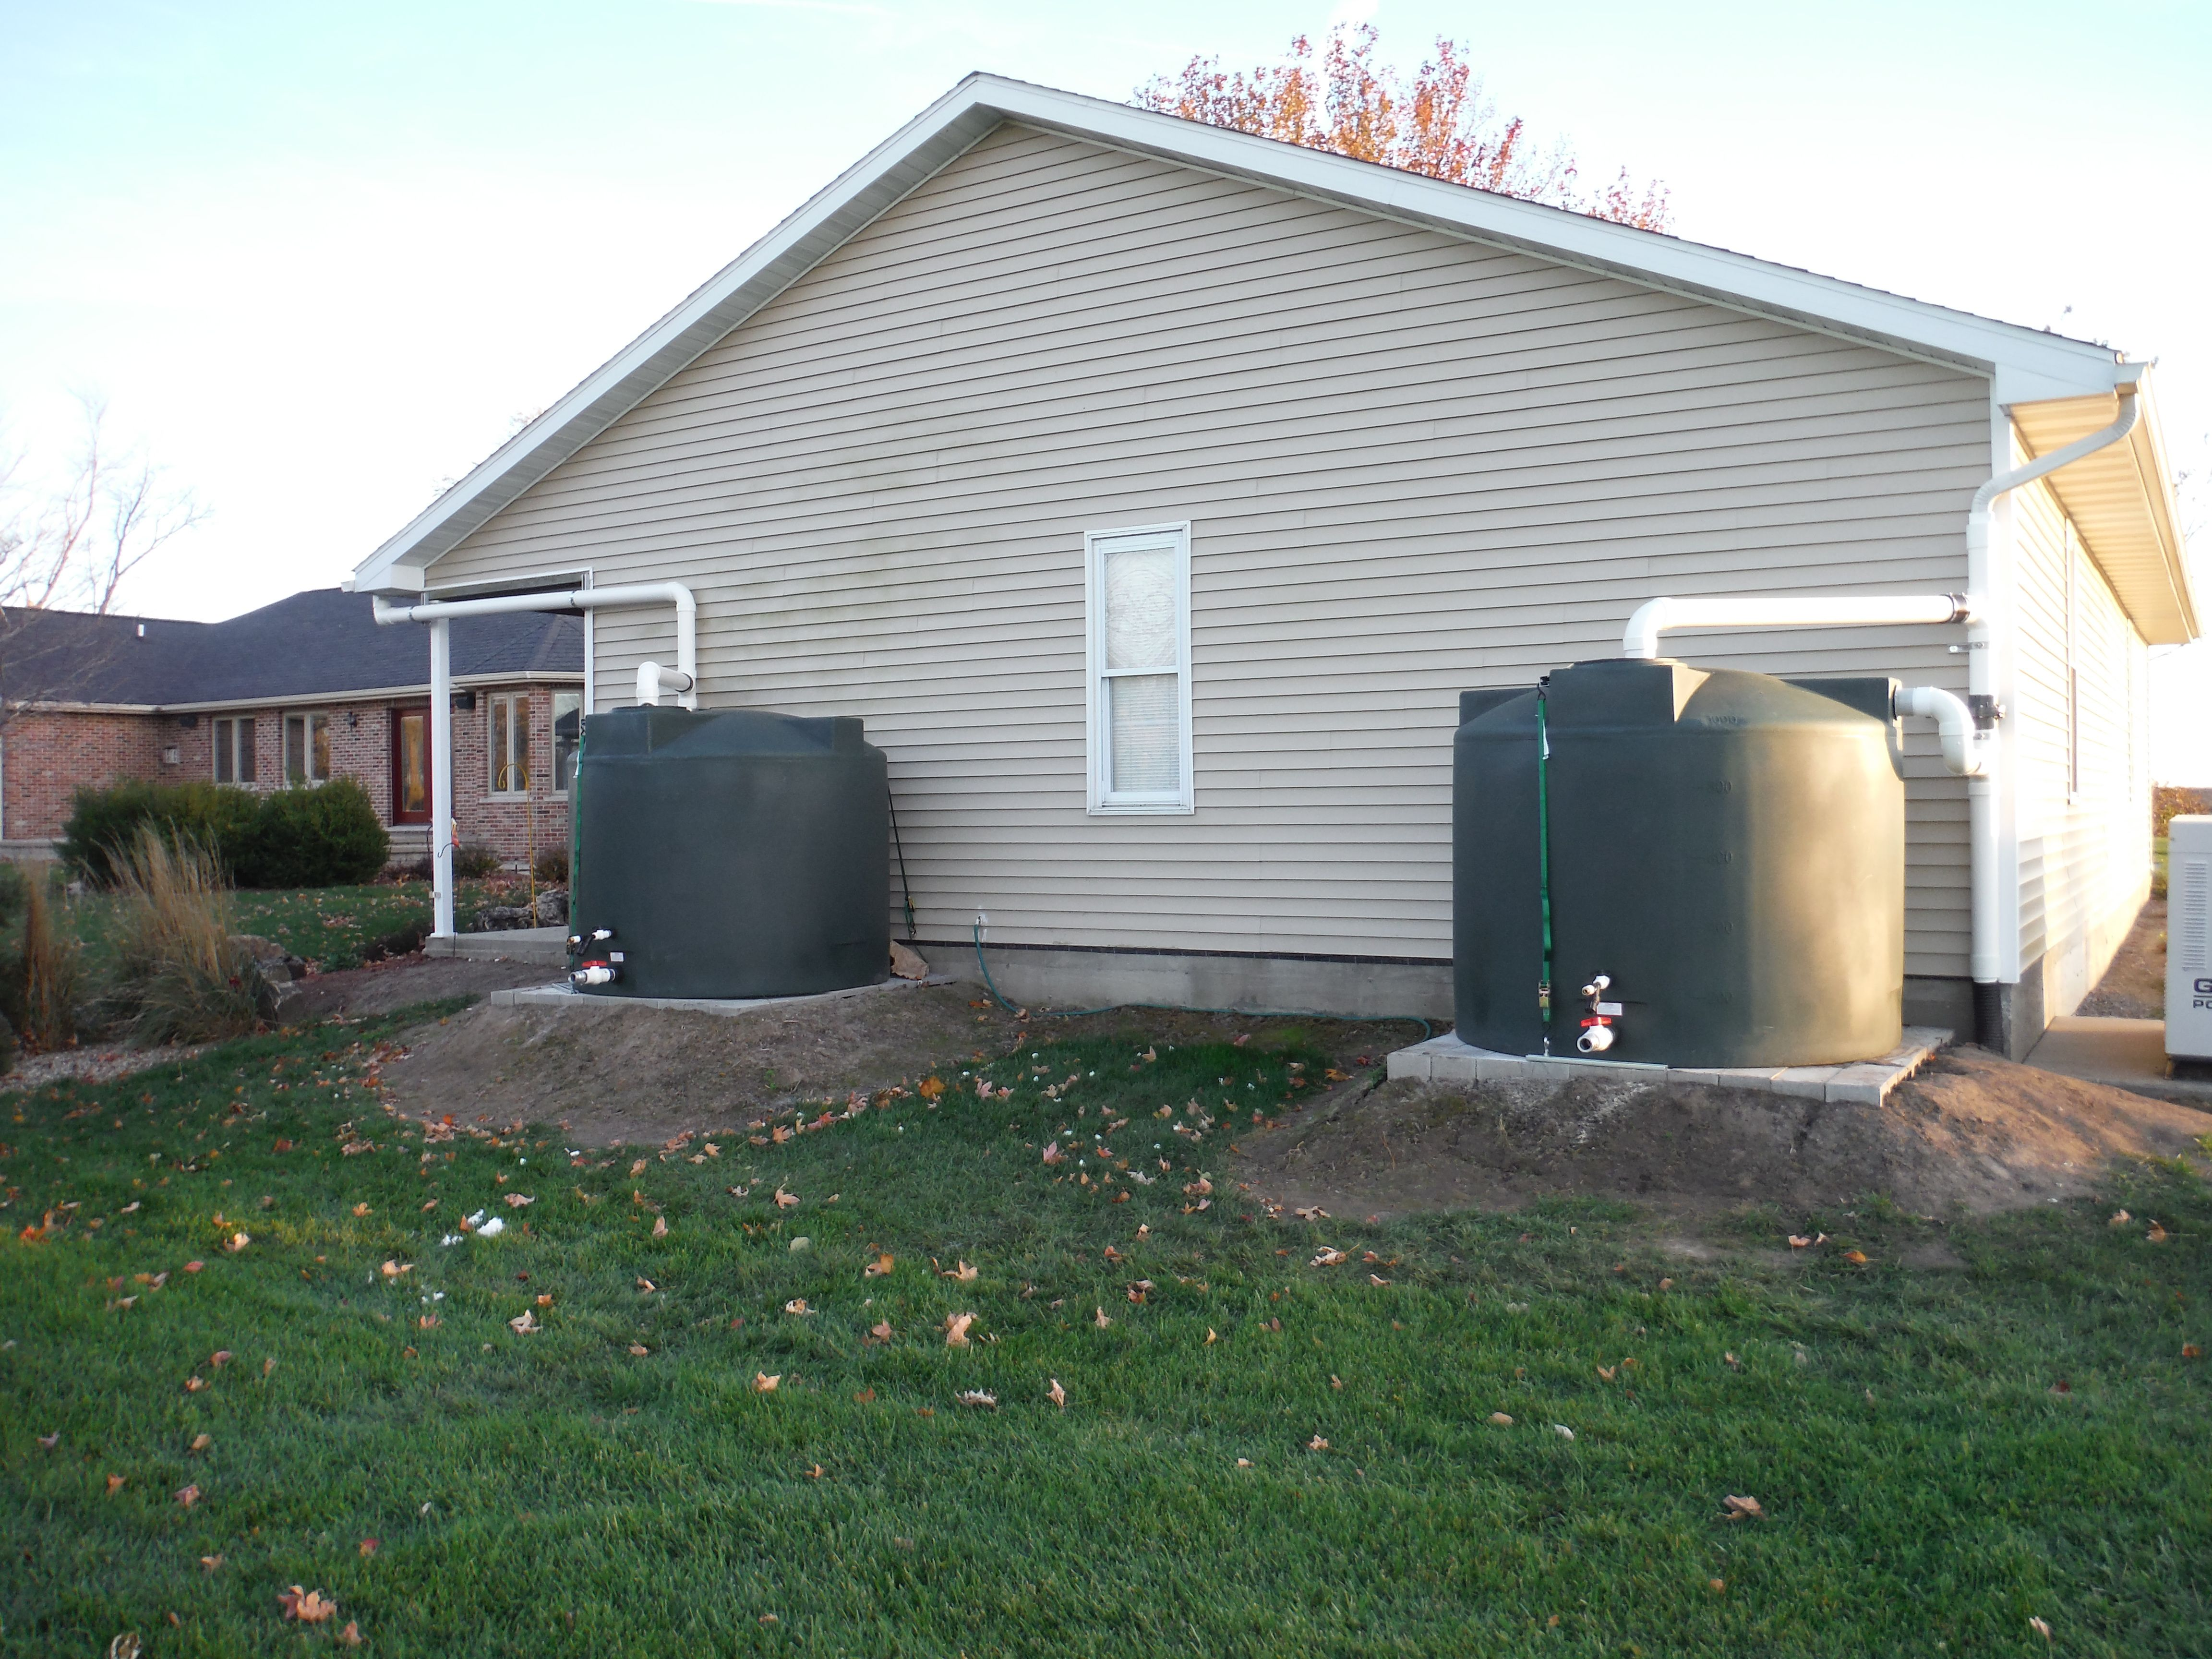 1000 Gallon Poly Mart Rainwater Tanks Installed In Illinois. These Tanks  Provide The Bulk Of The Outdoor Watering For This Homes Garden And Outdoor  Plants!